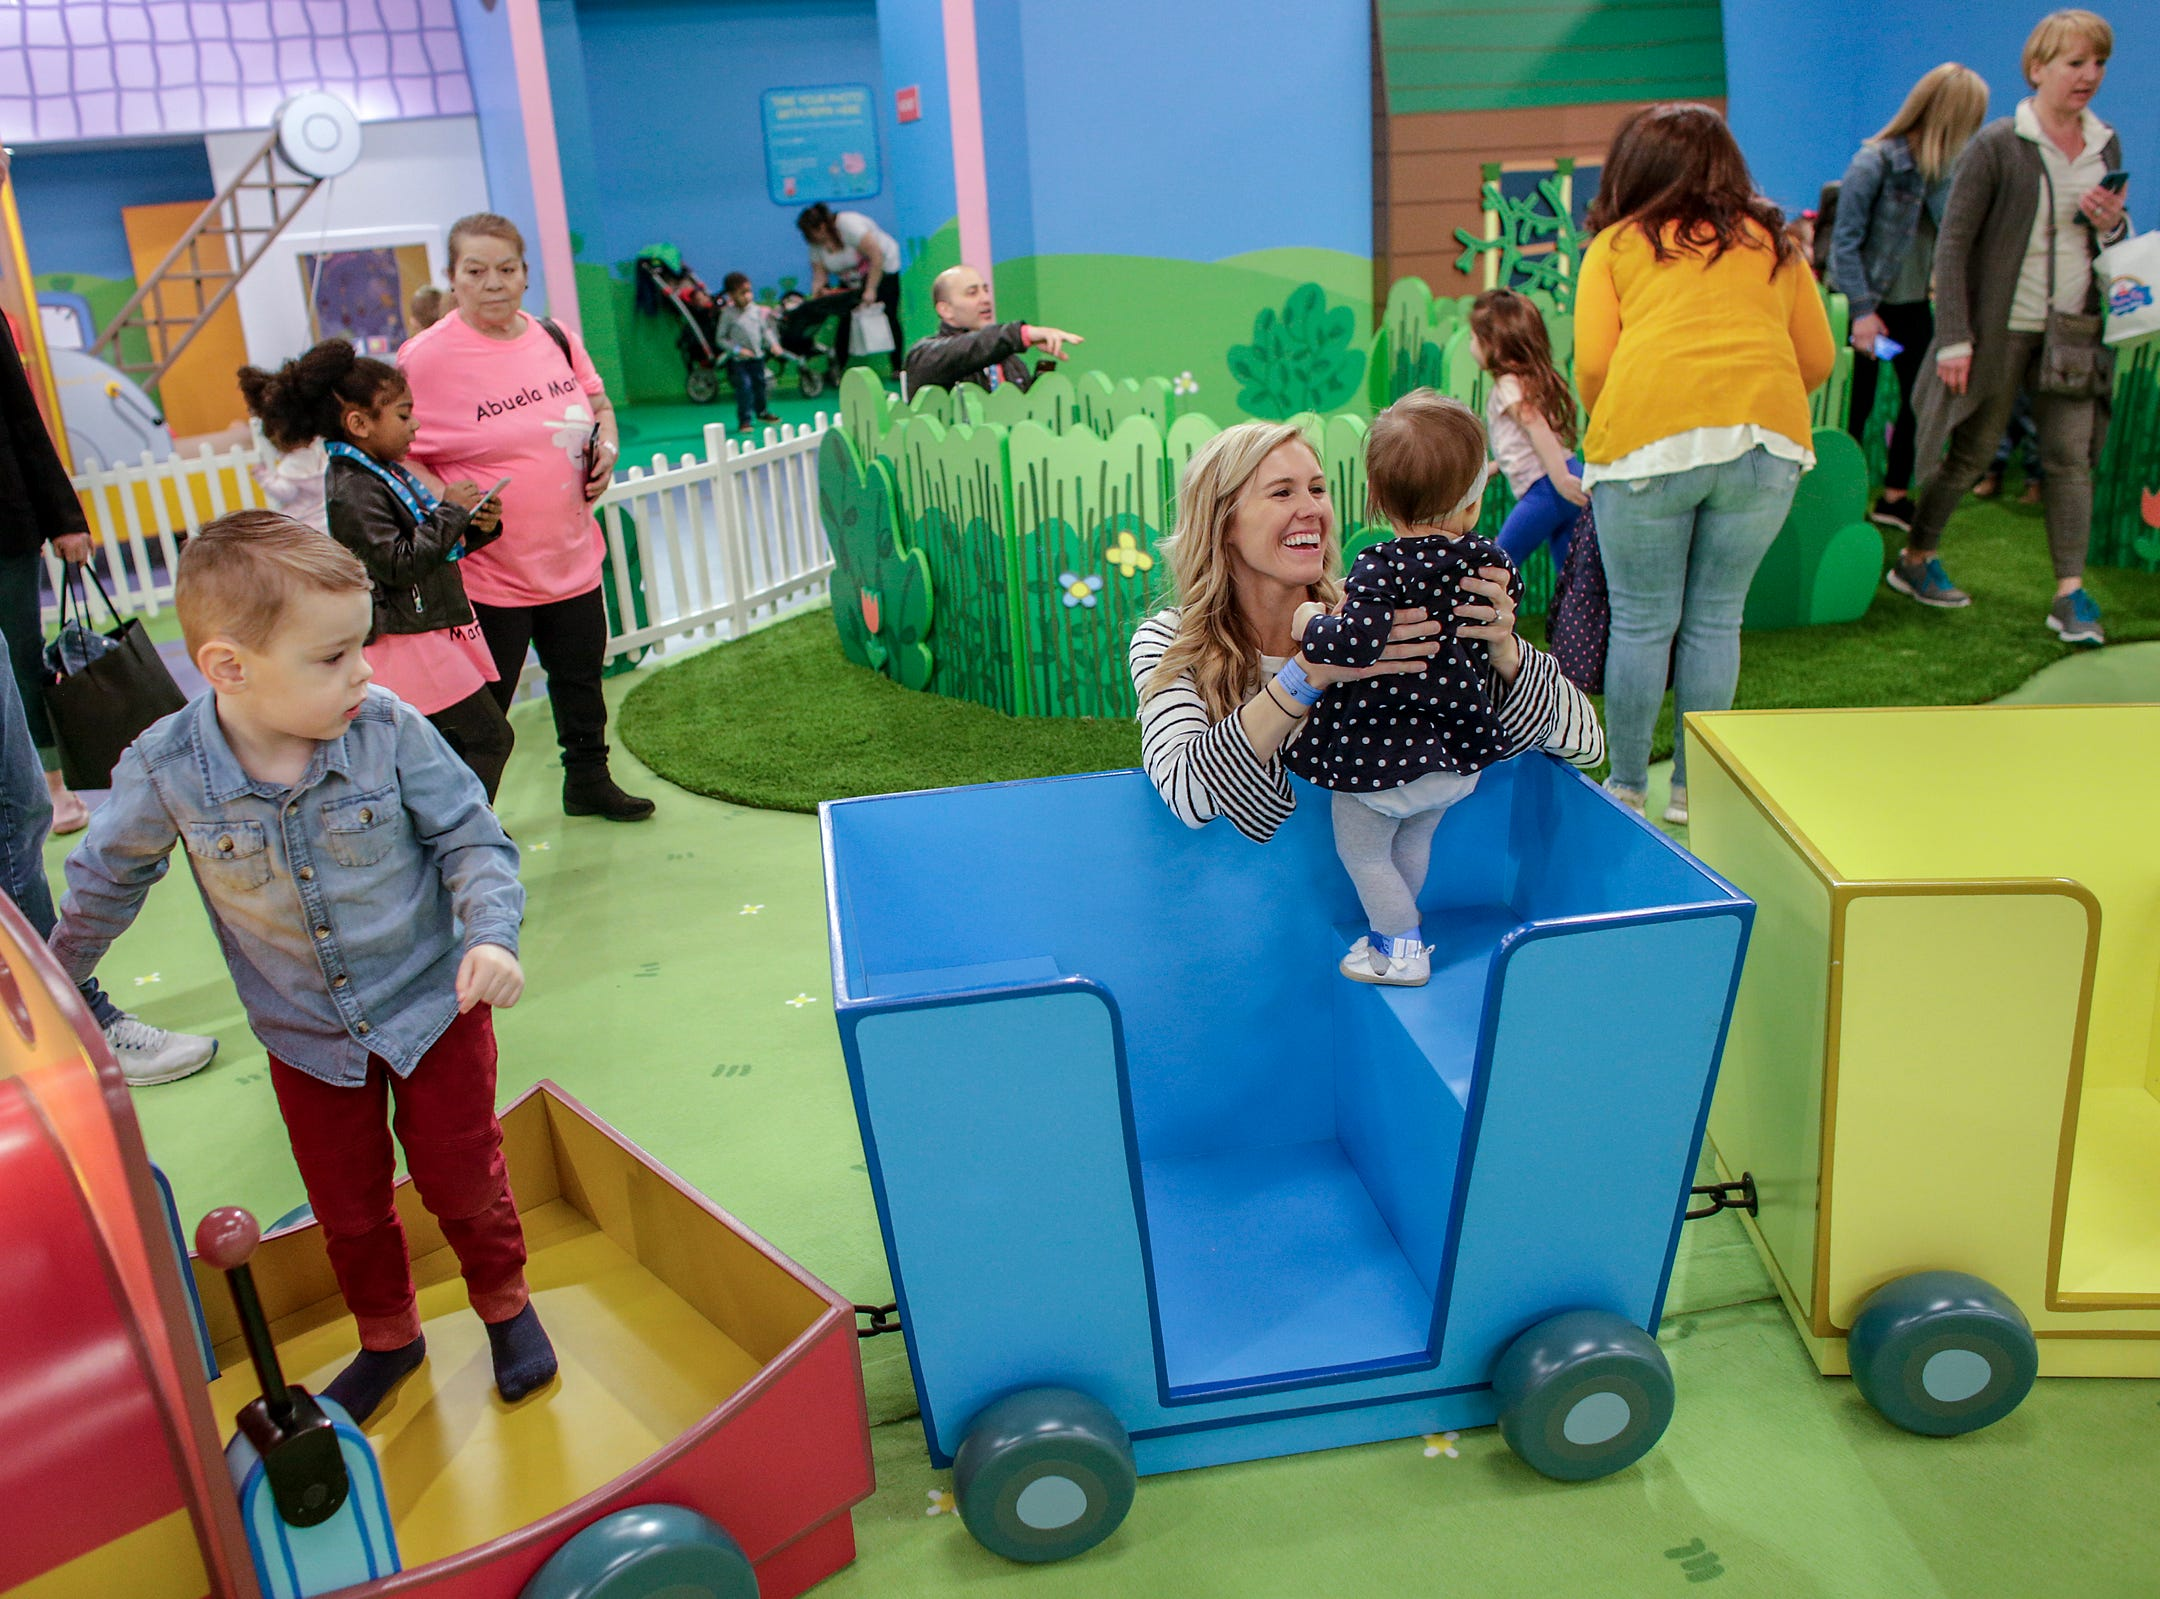 Shawna Coscarelli, 32, holds up her daughter, Ella, 1, while playing on a train in the sensory garden with her son, Austin, 3, at Peppa Pig's World of Play attraction at Great Lakes Crossing in Auburn Hills, Mich. photographed on Friday, March 29, 2019.